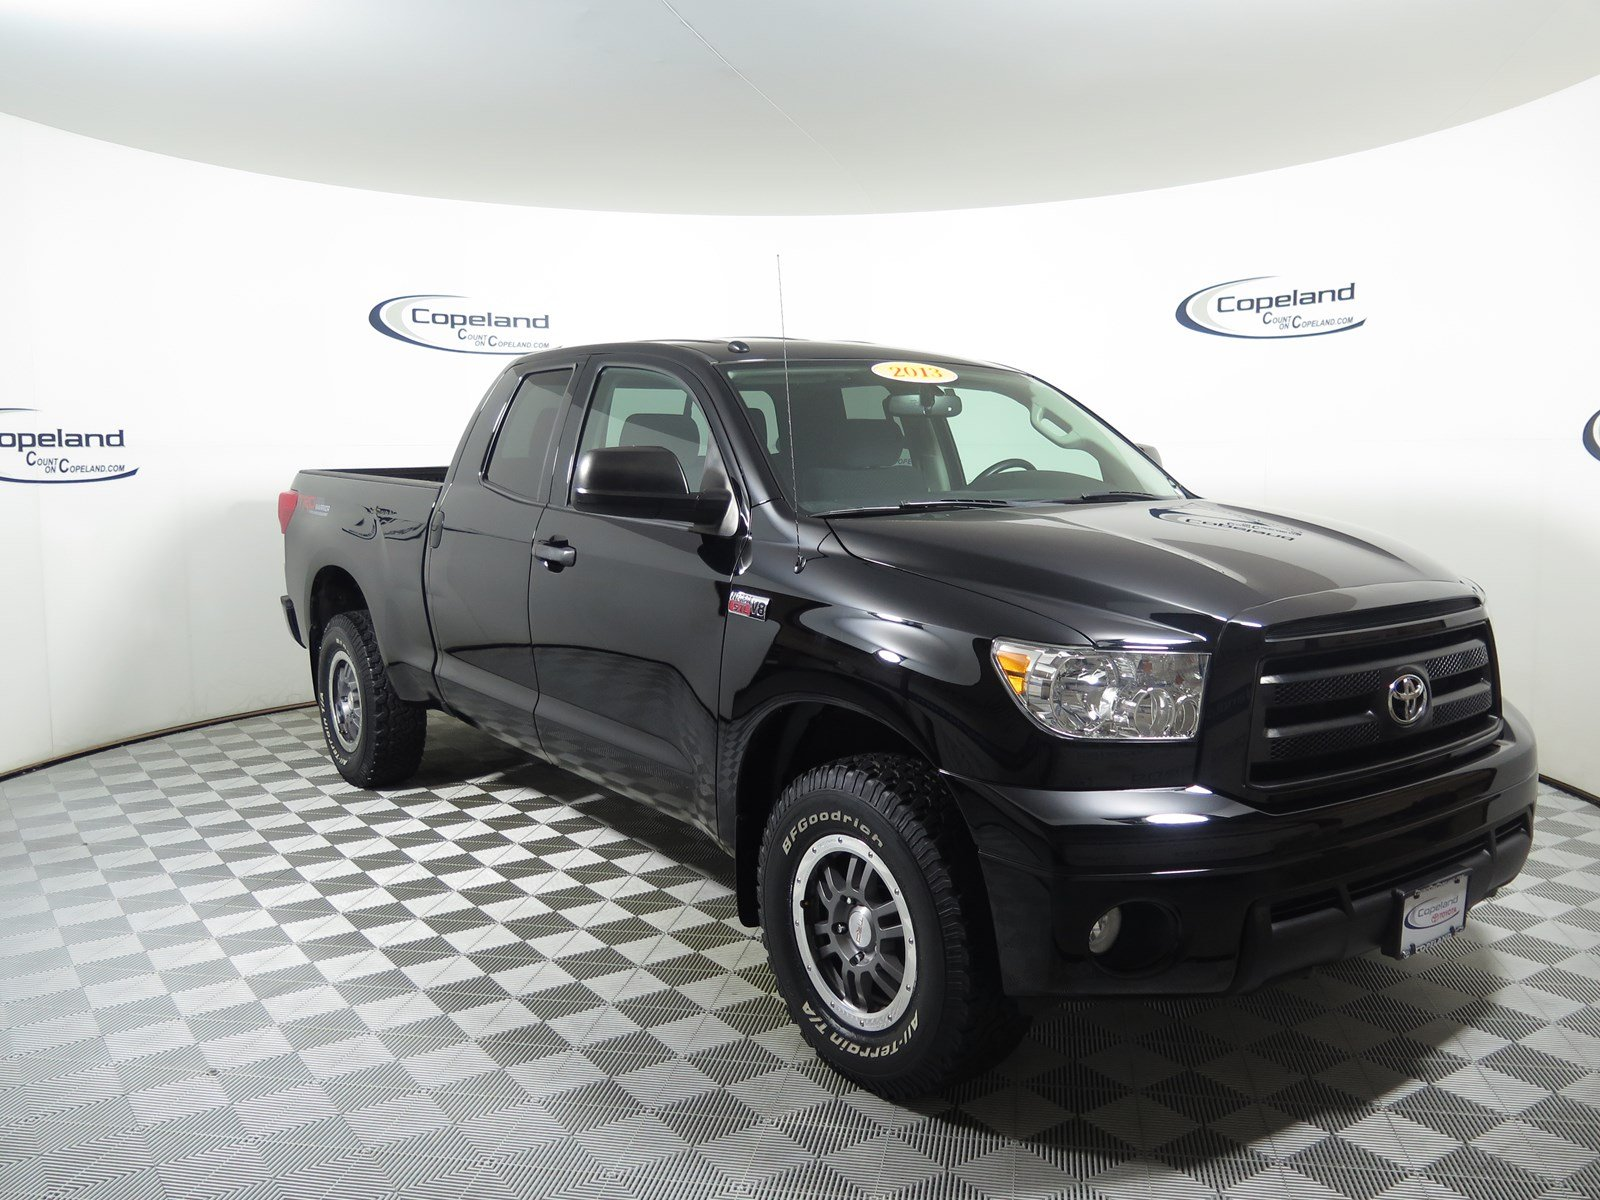 2013 Toyota Tundra 4WD Truck Double Cab V8 Truck